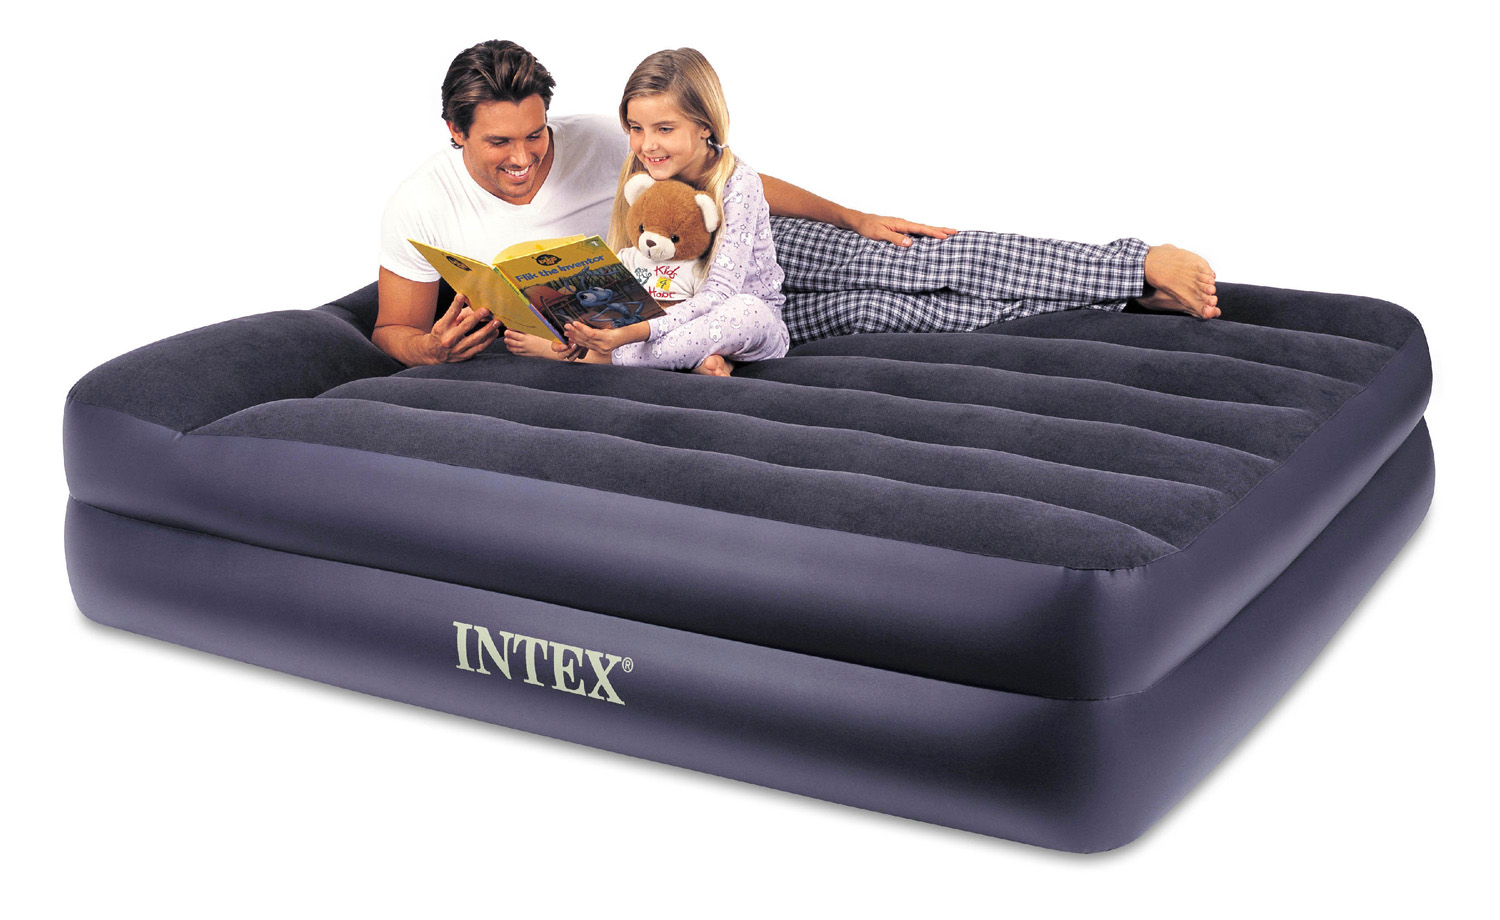 Intex Pillow Rest Queen Airbed with Built-In Pump | 67701E